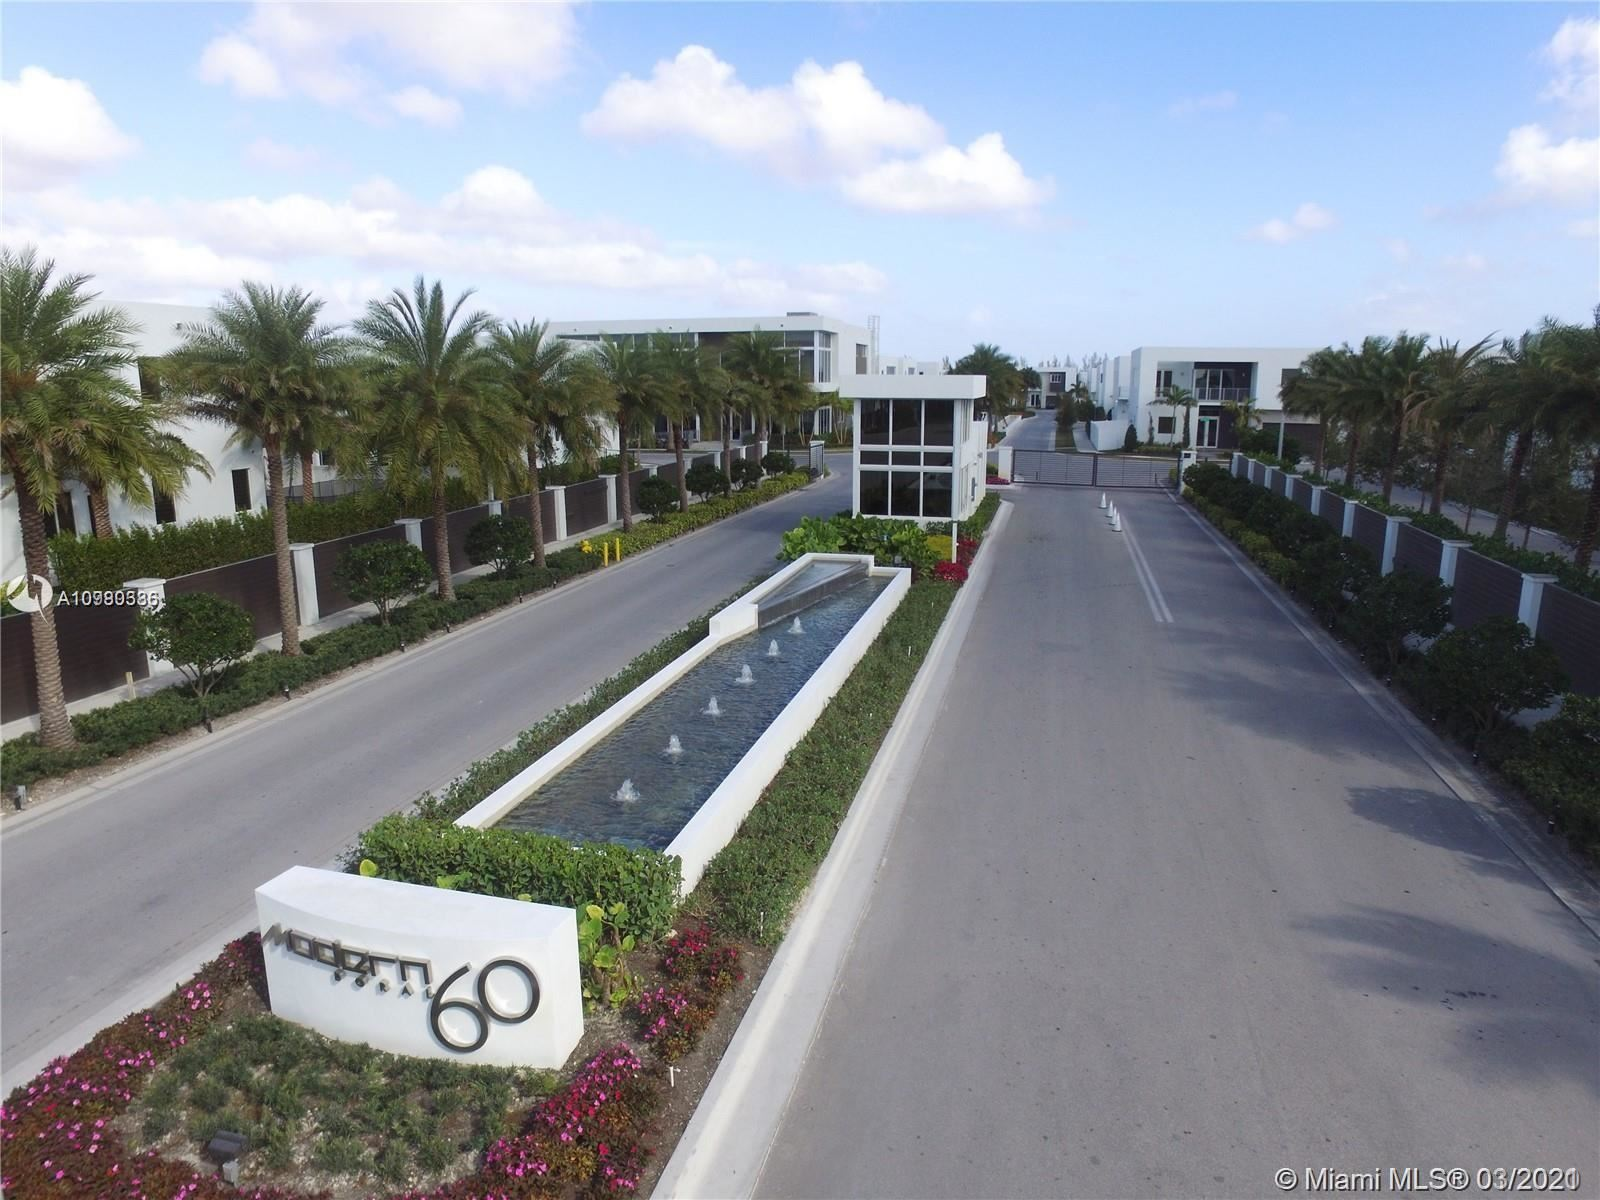 7625 NW 100th Ave, Doral, FL 33178 - #: A10980336